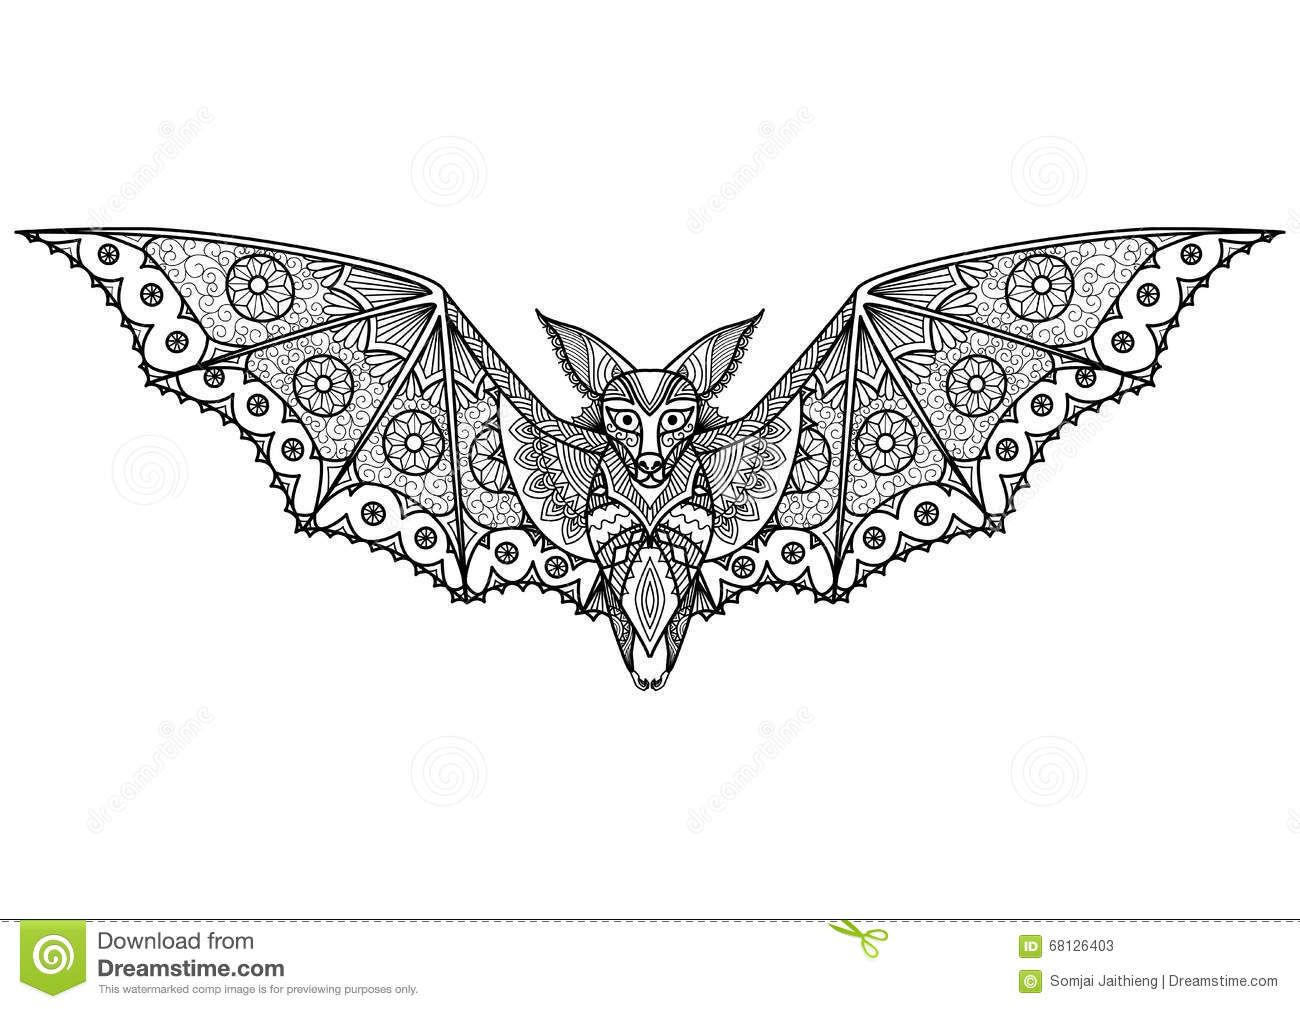 Bat Zentangle Illustration About Coloring Animal Abstract